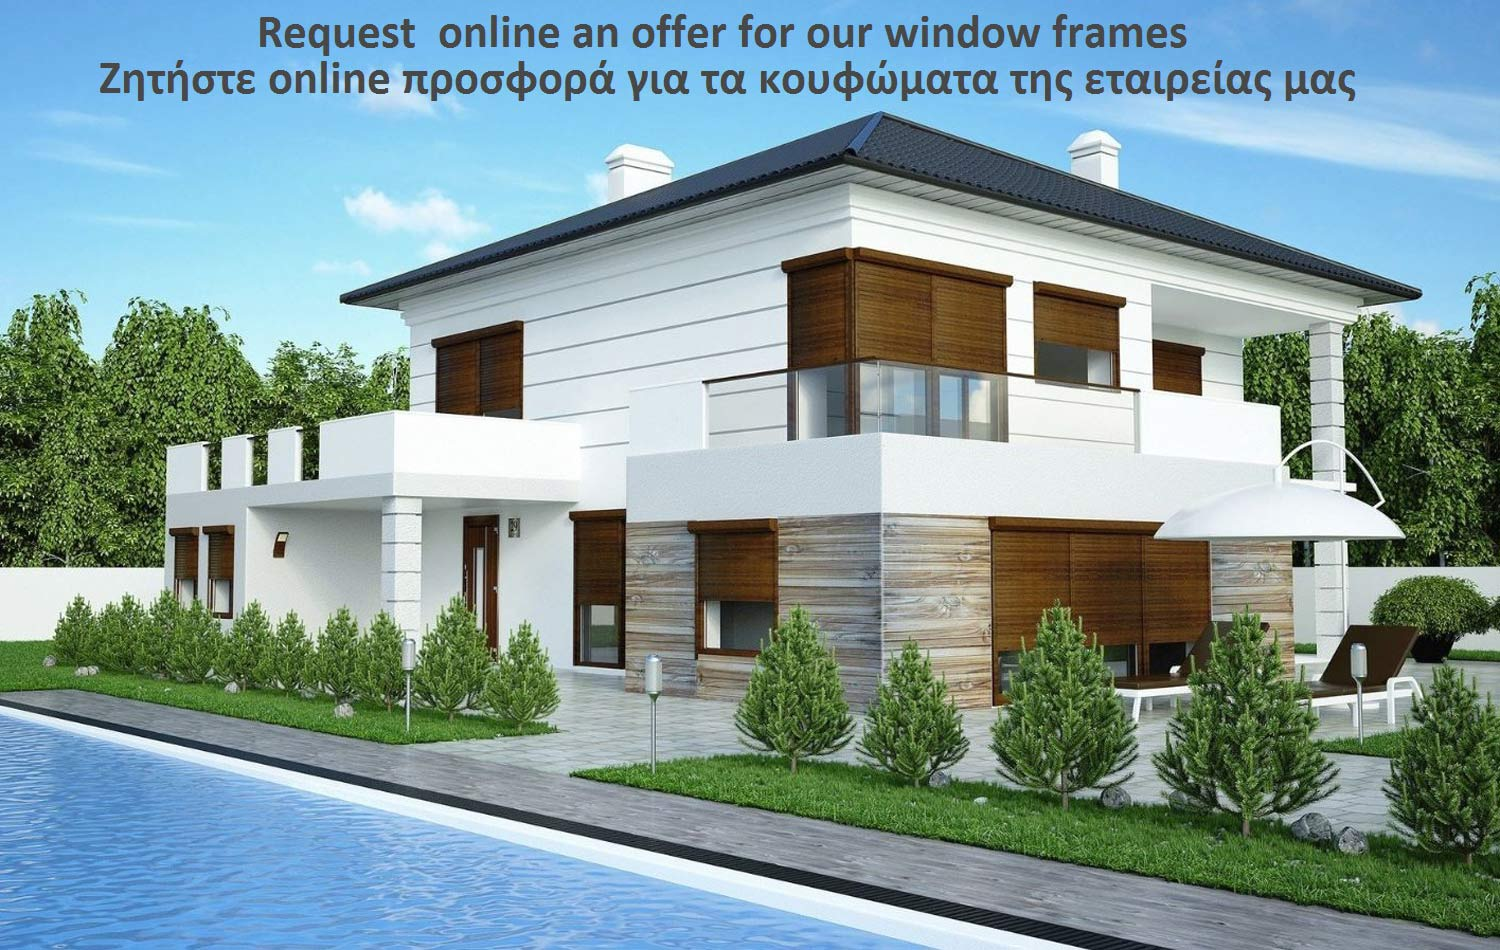 Request an online offer for our window frames